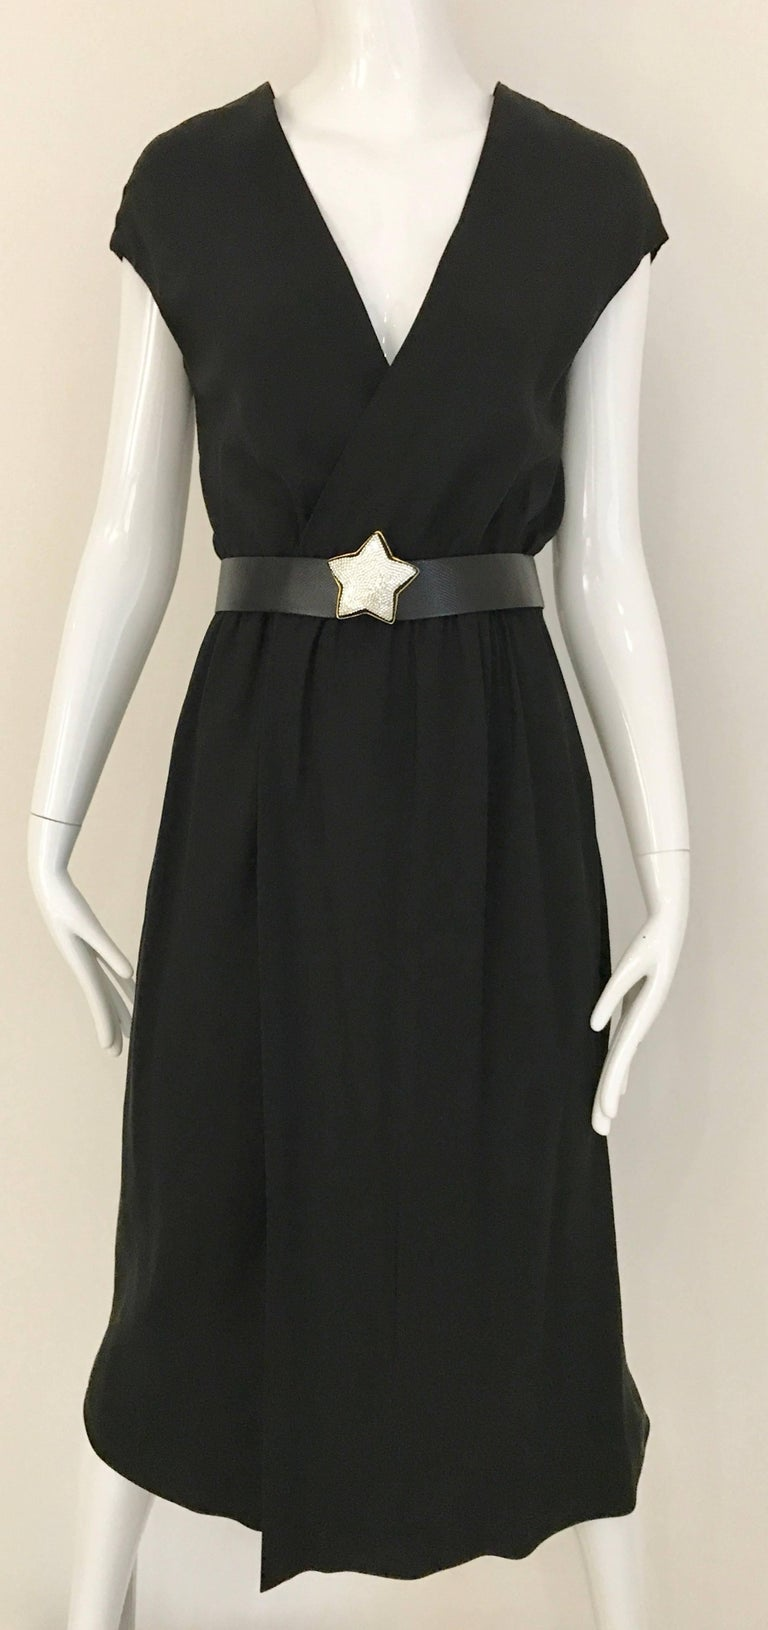 Vintage 1970s HALSTON Black Silk V Neck Wrap Dress  In Excellent Condition For Sale In Beverly Hills, CA